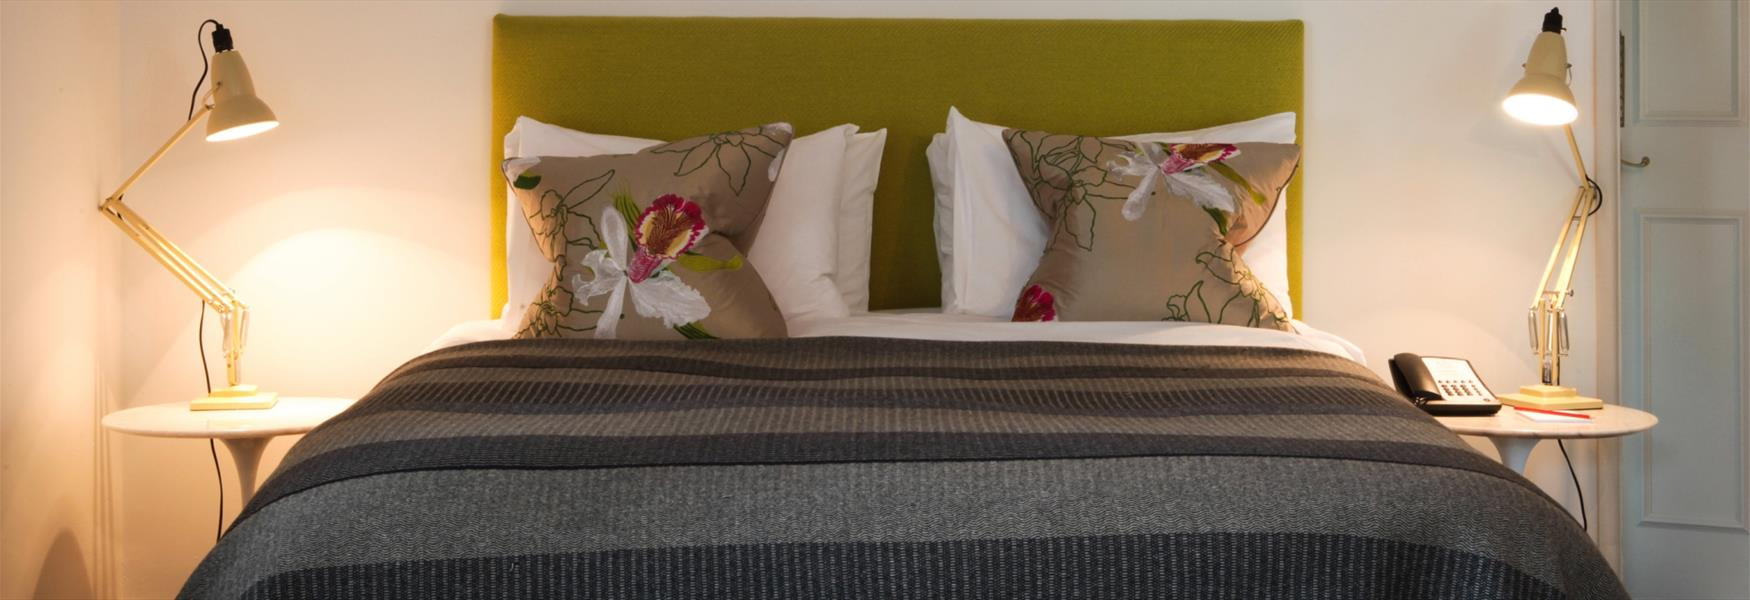 Contemporary or Traditional? - choose accommodation to suit you